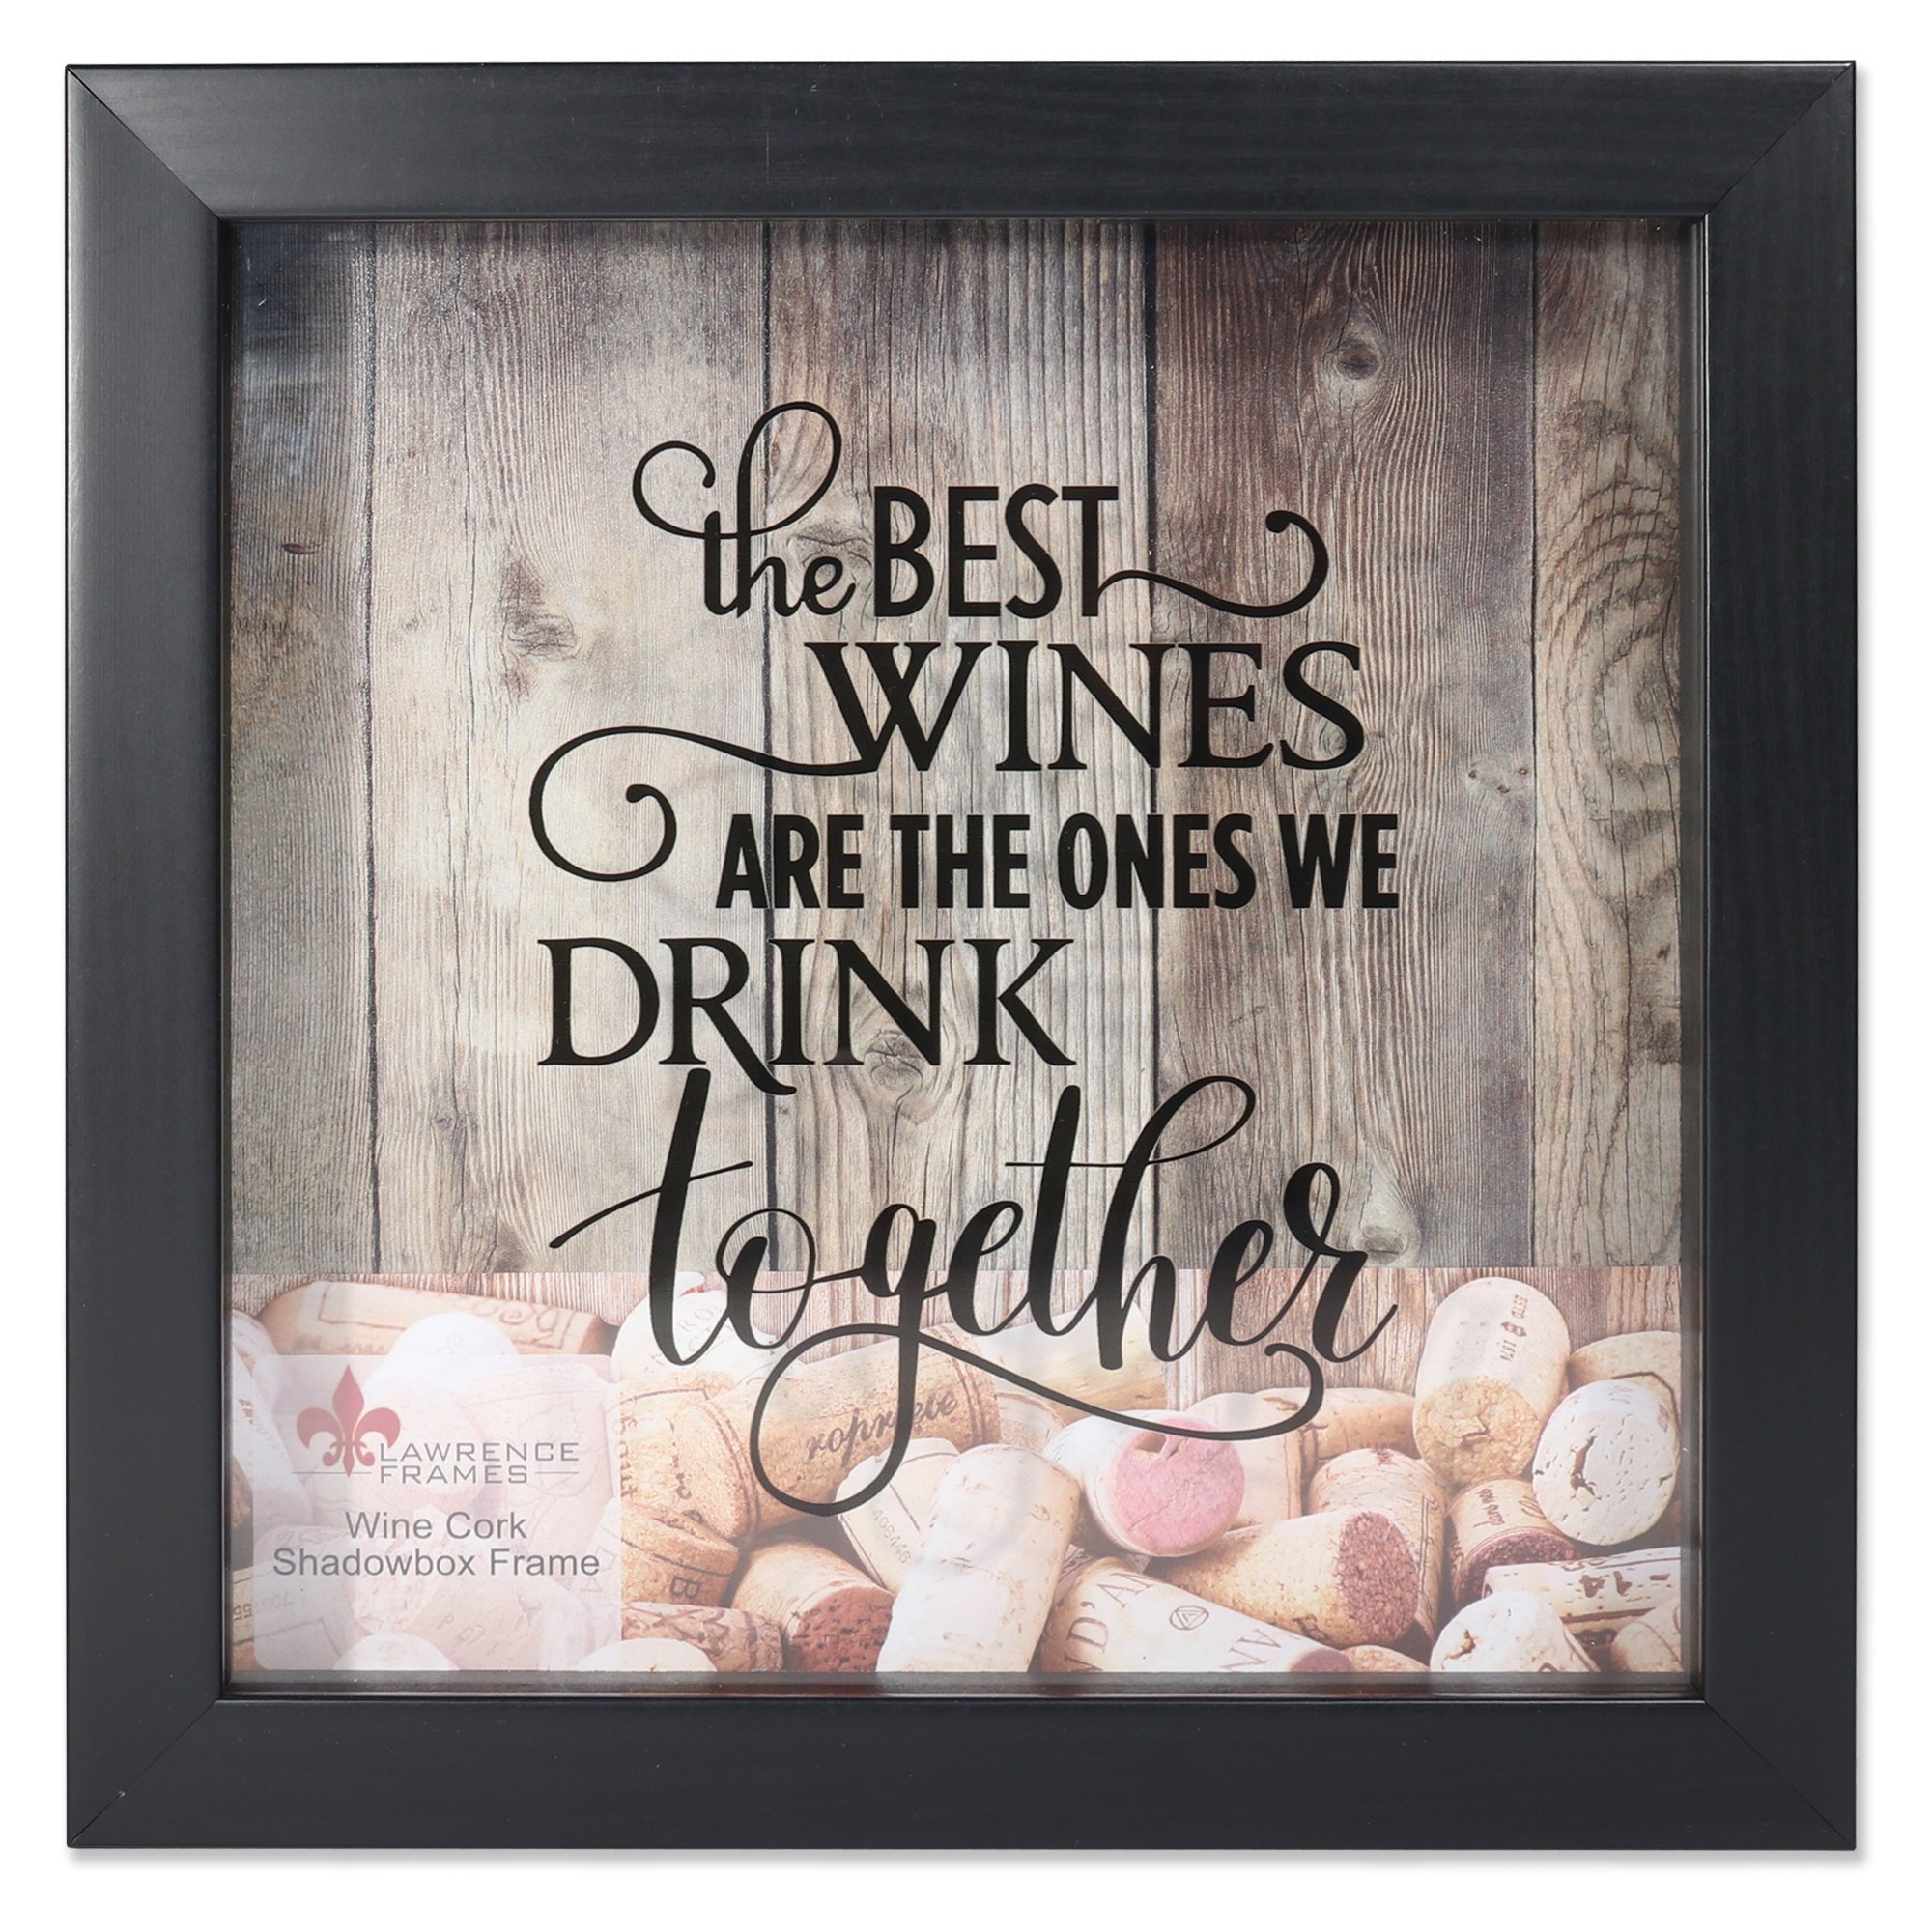 Lawrence Frames 10x10 Black Shadow Box Wine Cork Holder Black